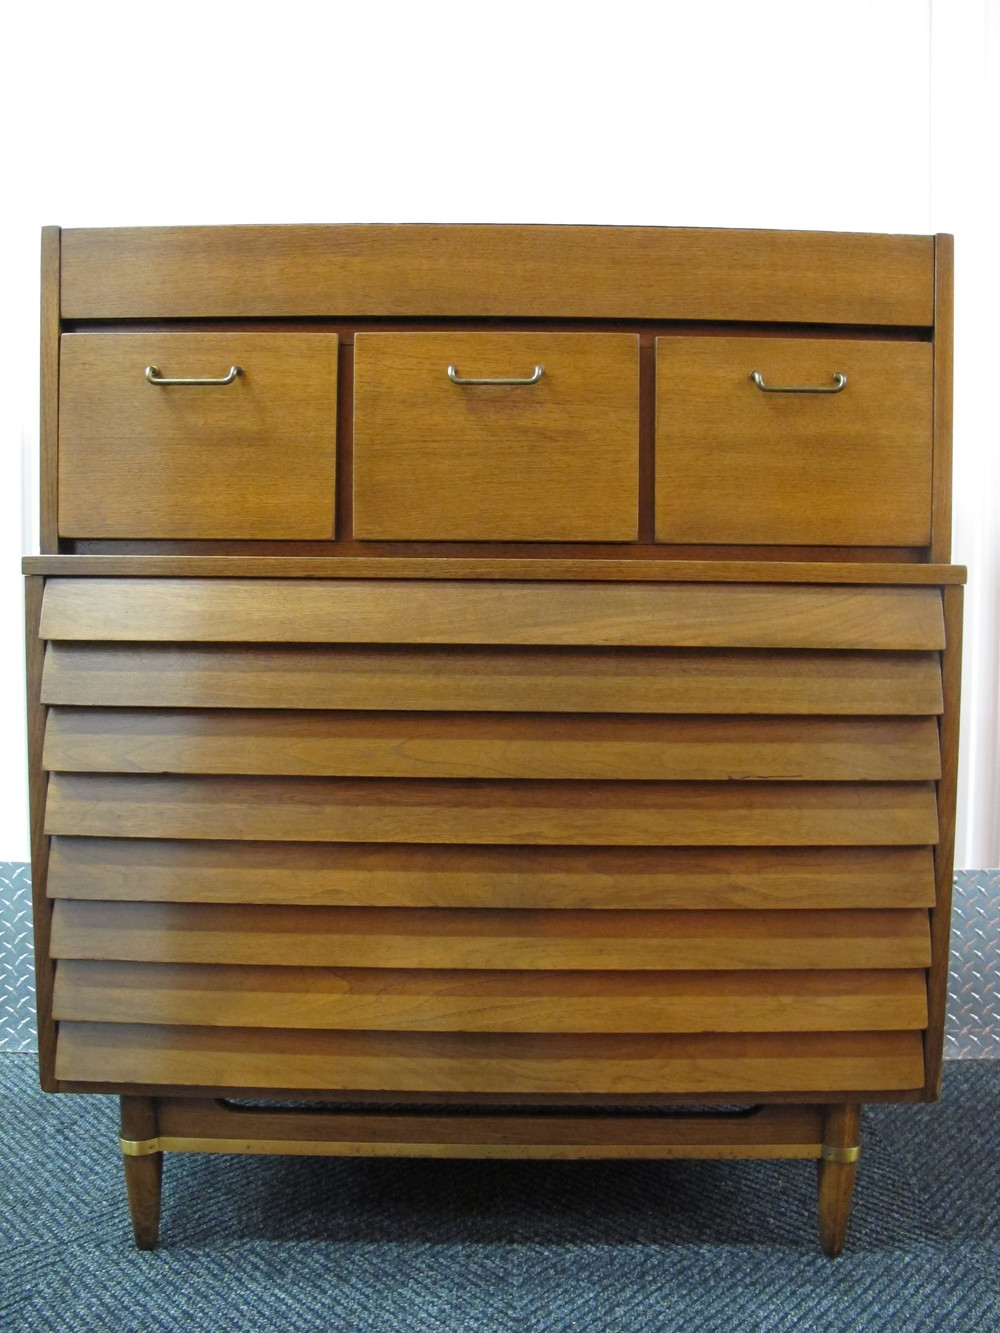 AMERICAN OF MARTINSVILLE HI BOY DRESSER